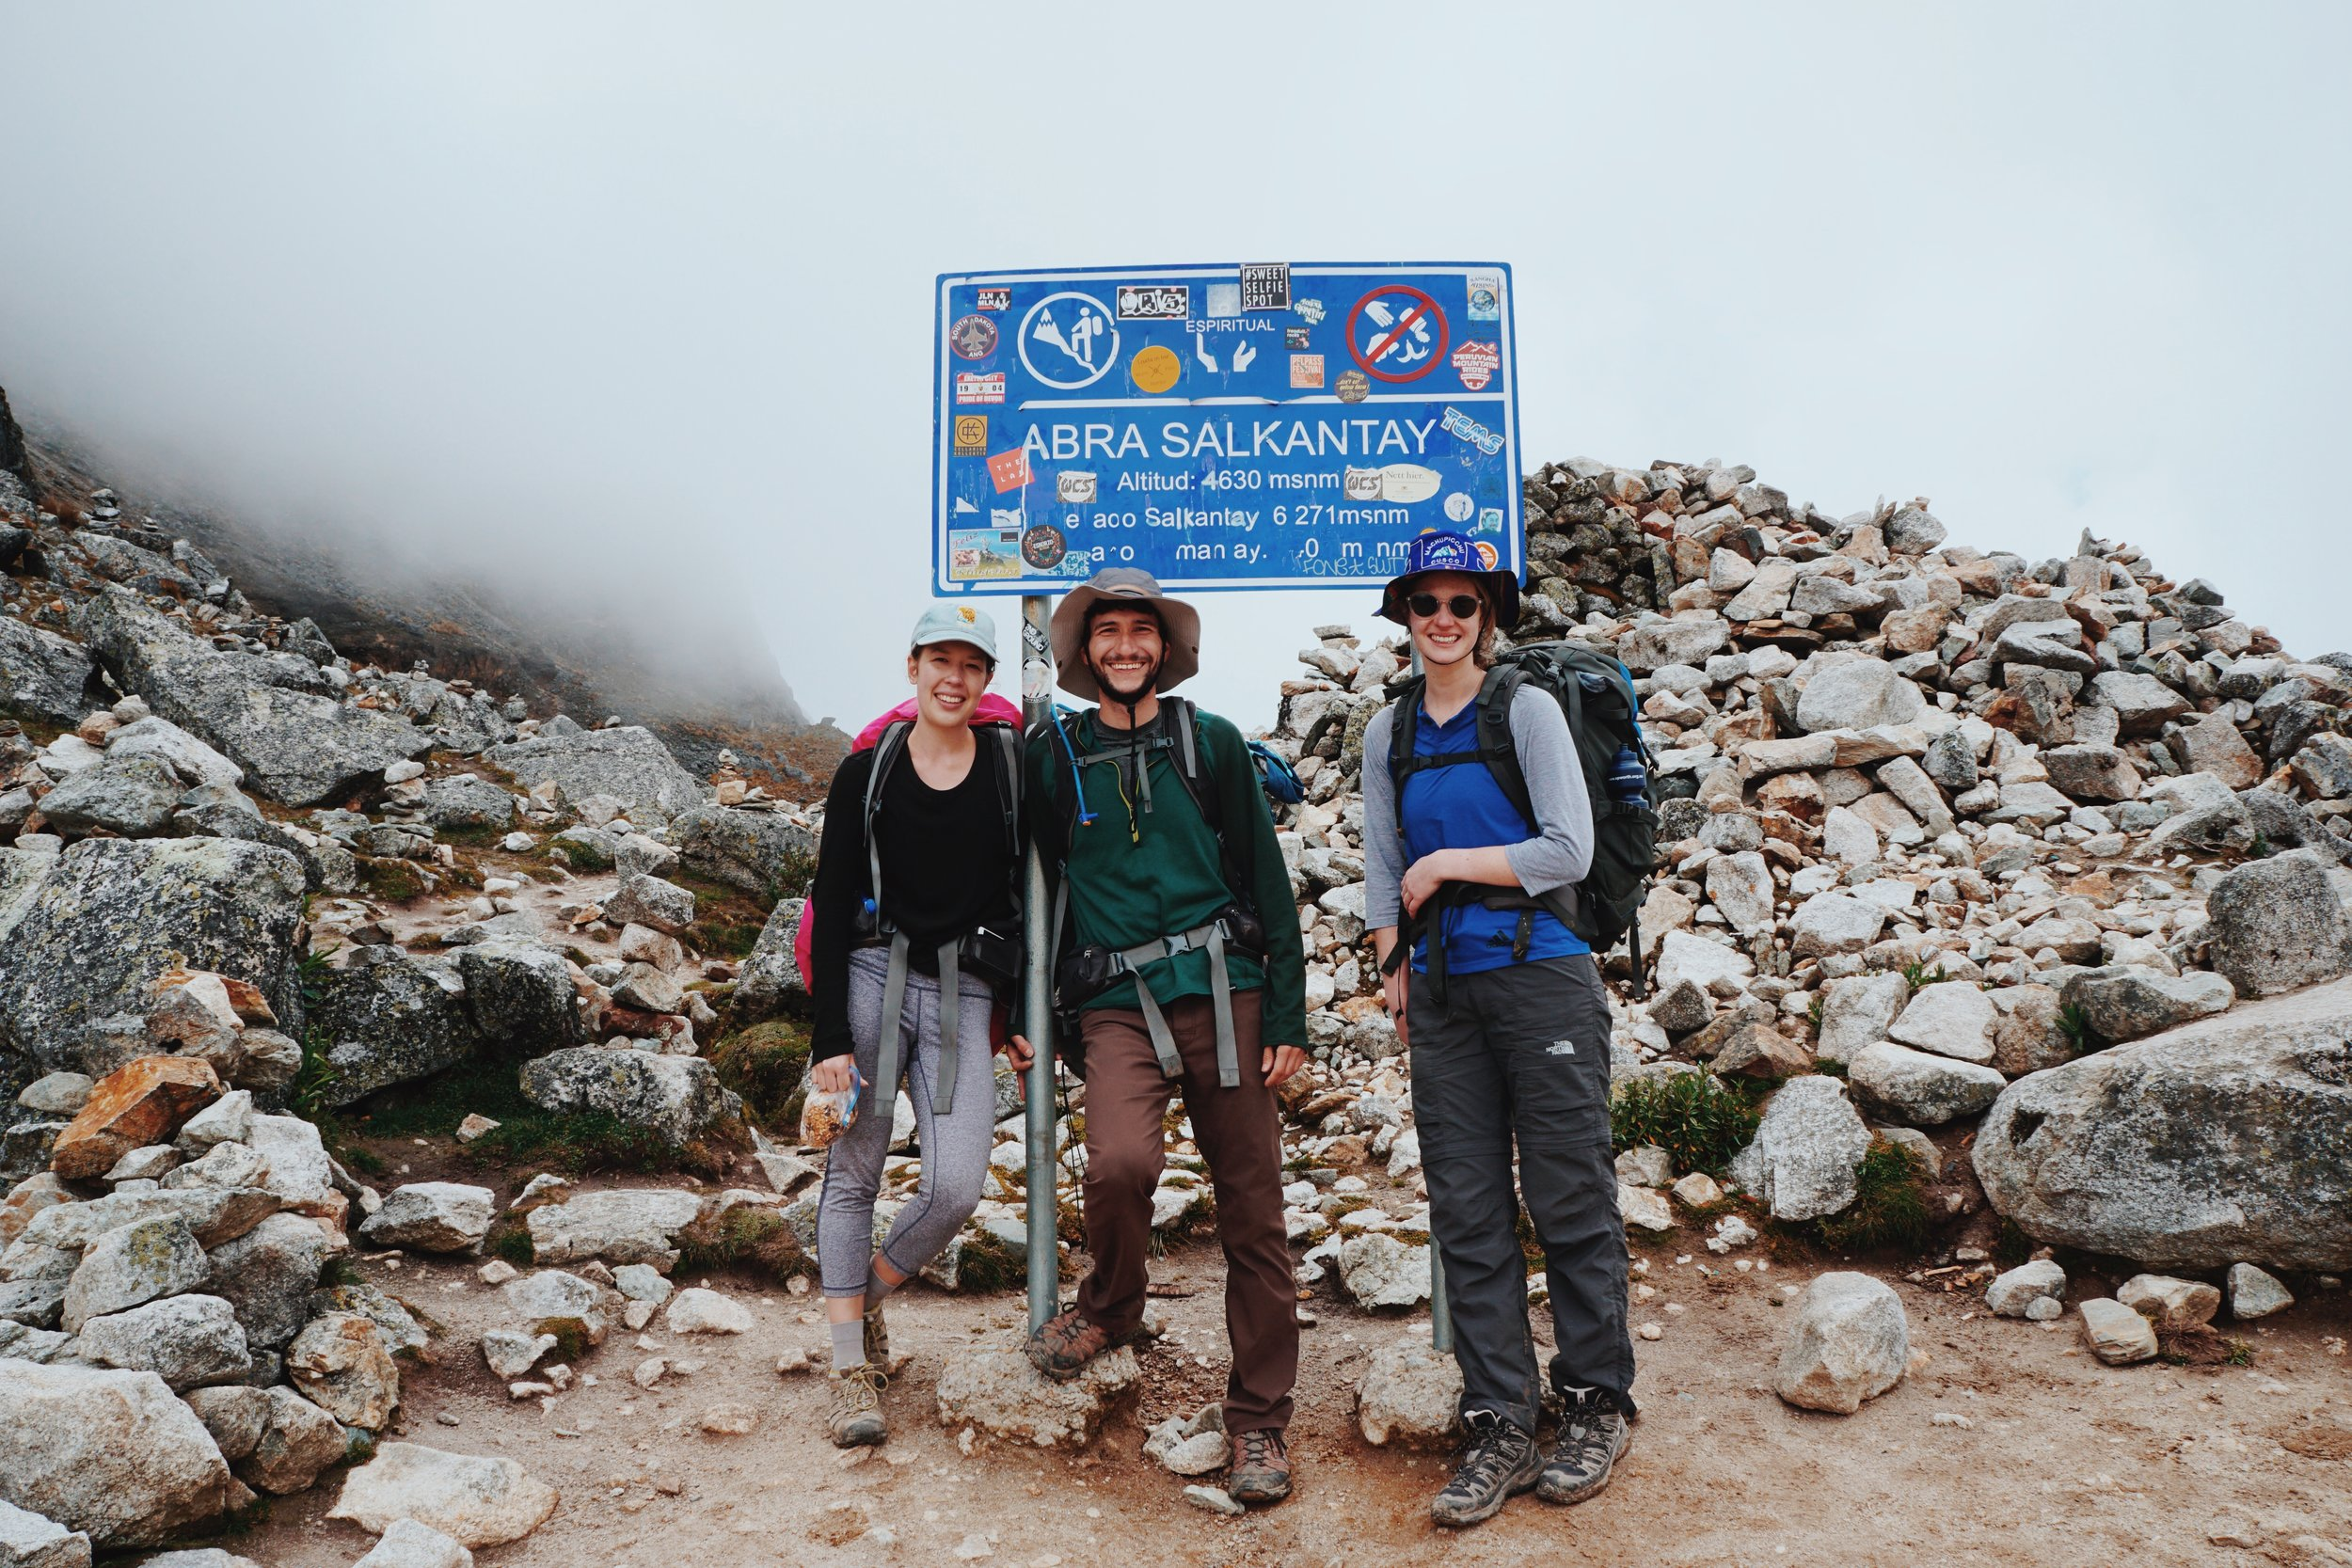 Day 1: At the top of the Salkantay Pass. Nerdy hats optional.